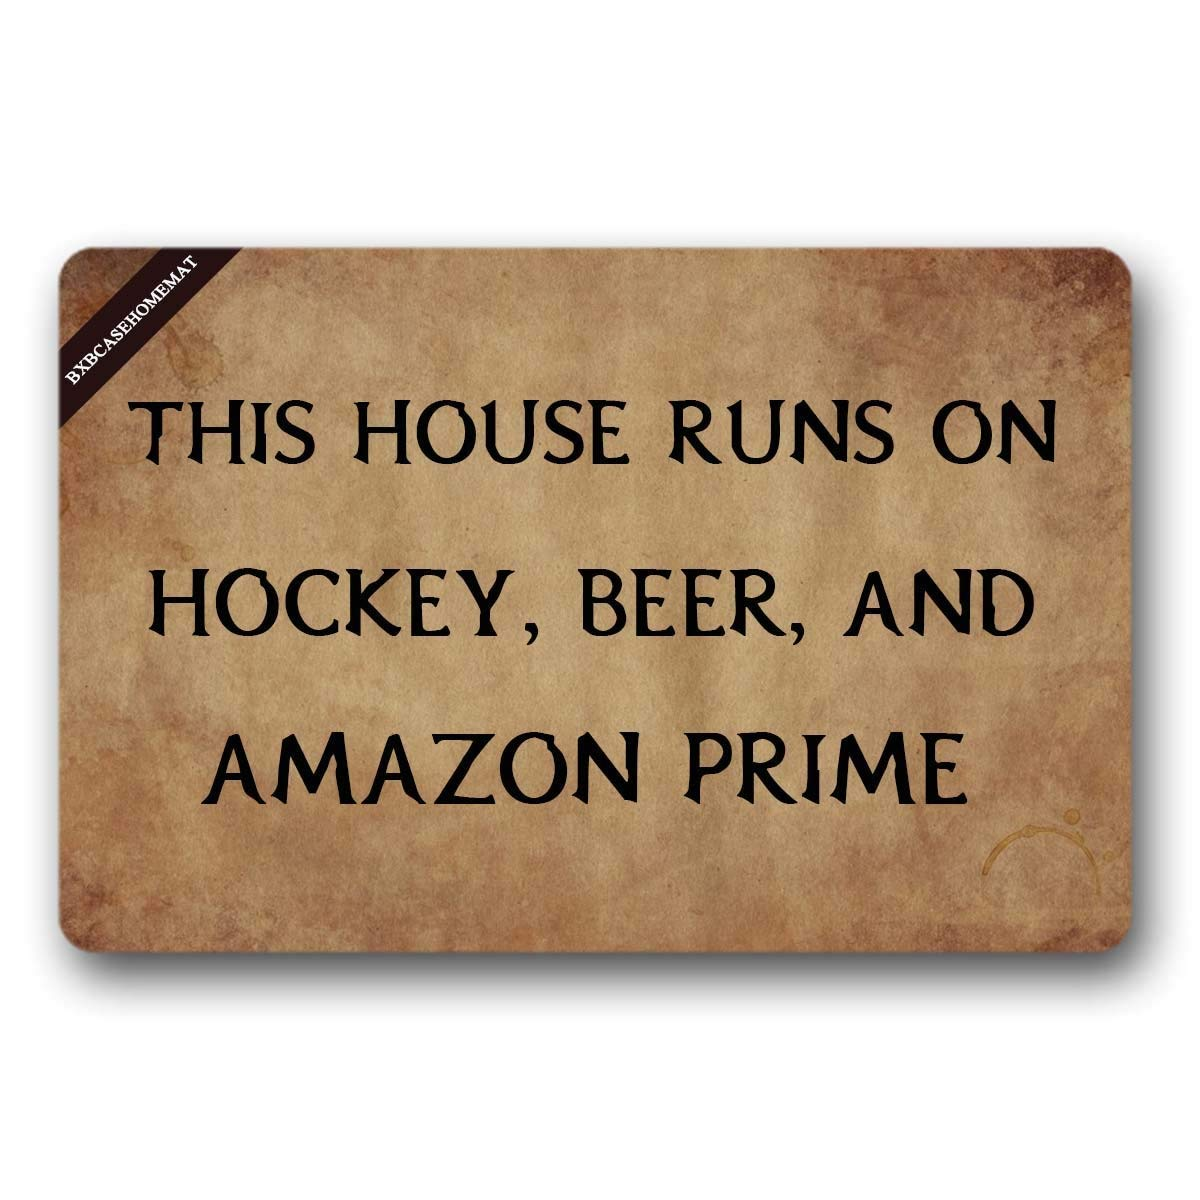 This House Runs On Hockey, Beer, and Welcome Doormat Decorative Doormat Quote Doormat Welcome Mat Front Porch 23.6(L) X15.7(W) inch F. Twiggs